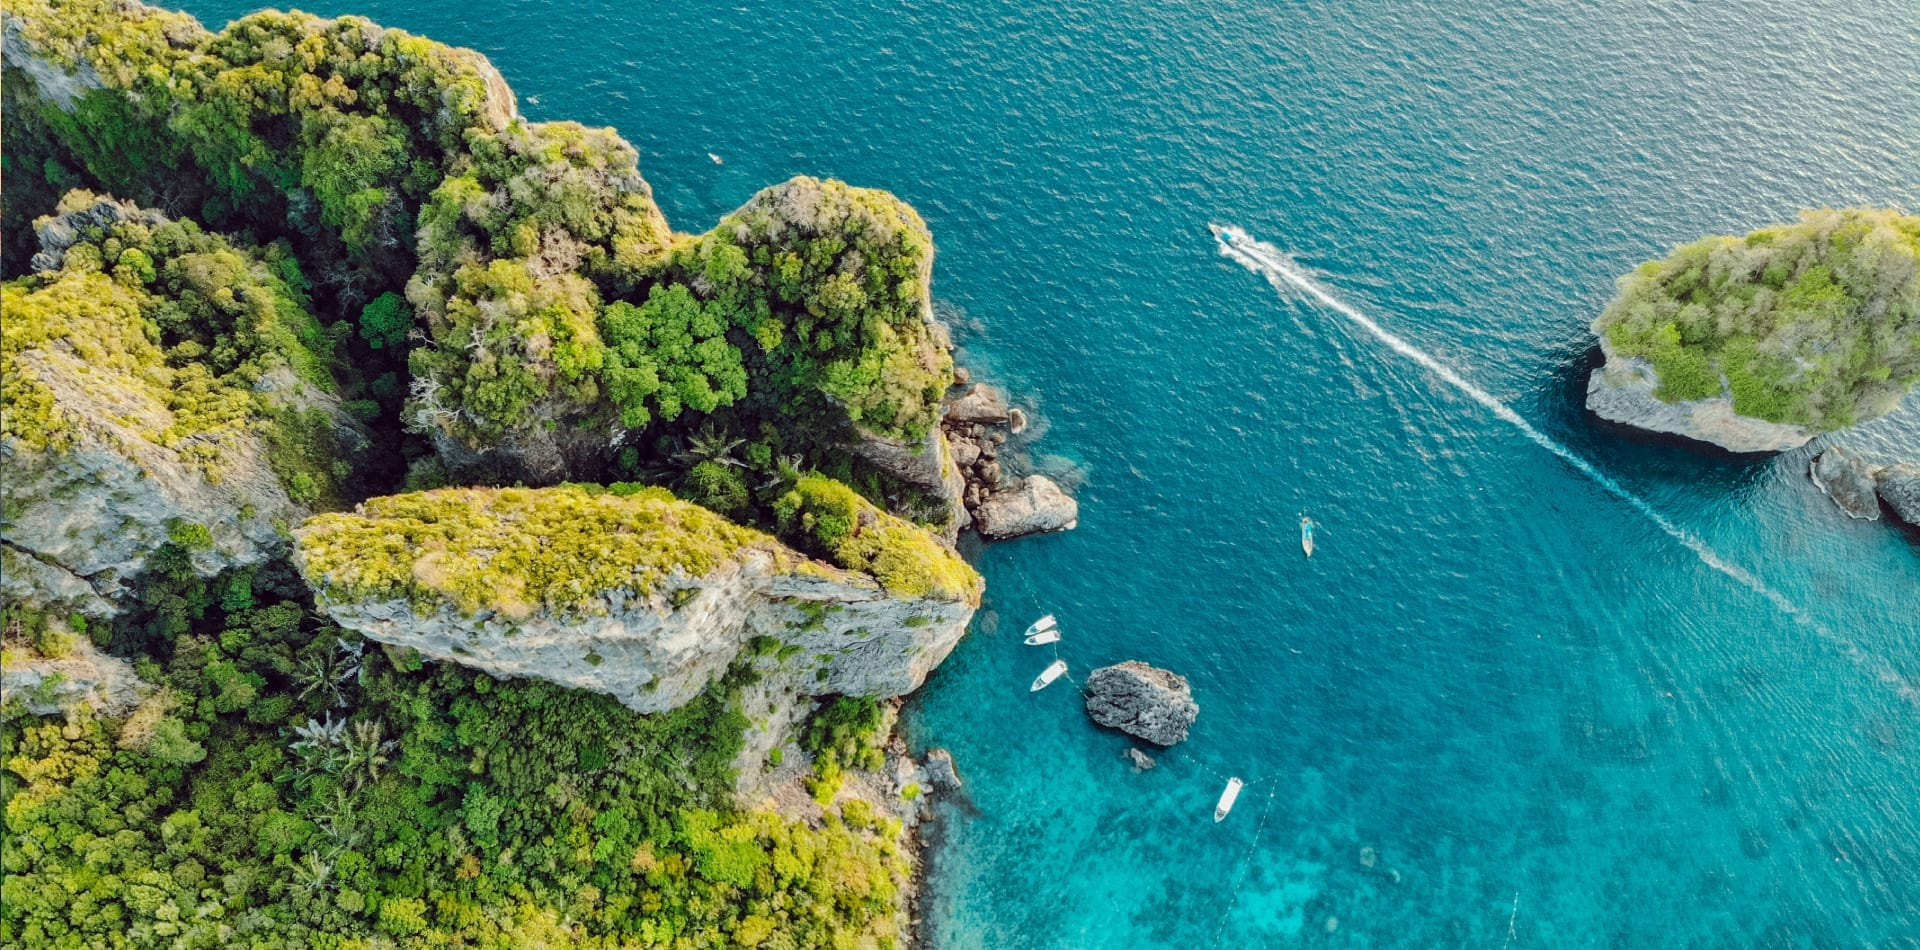 Aerial view of the Thailand coastline